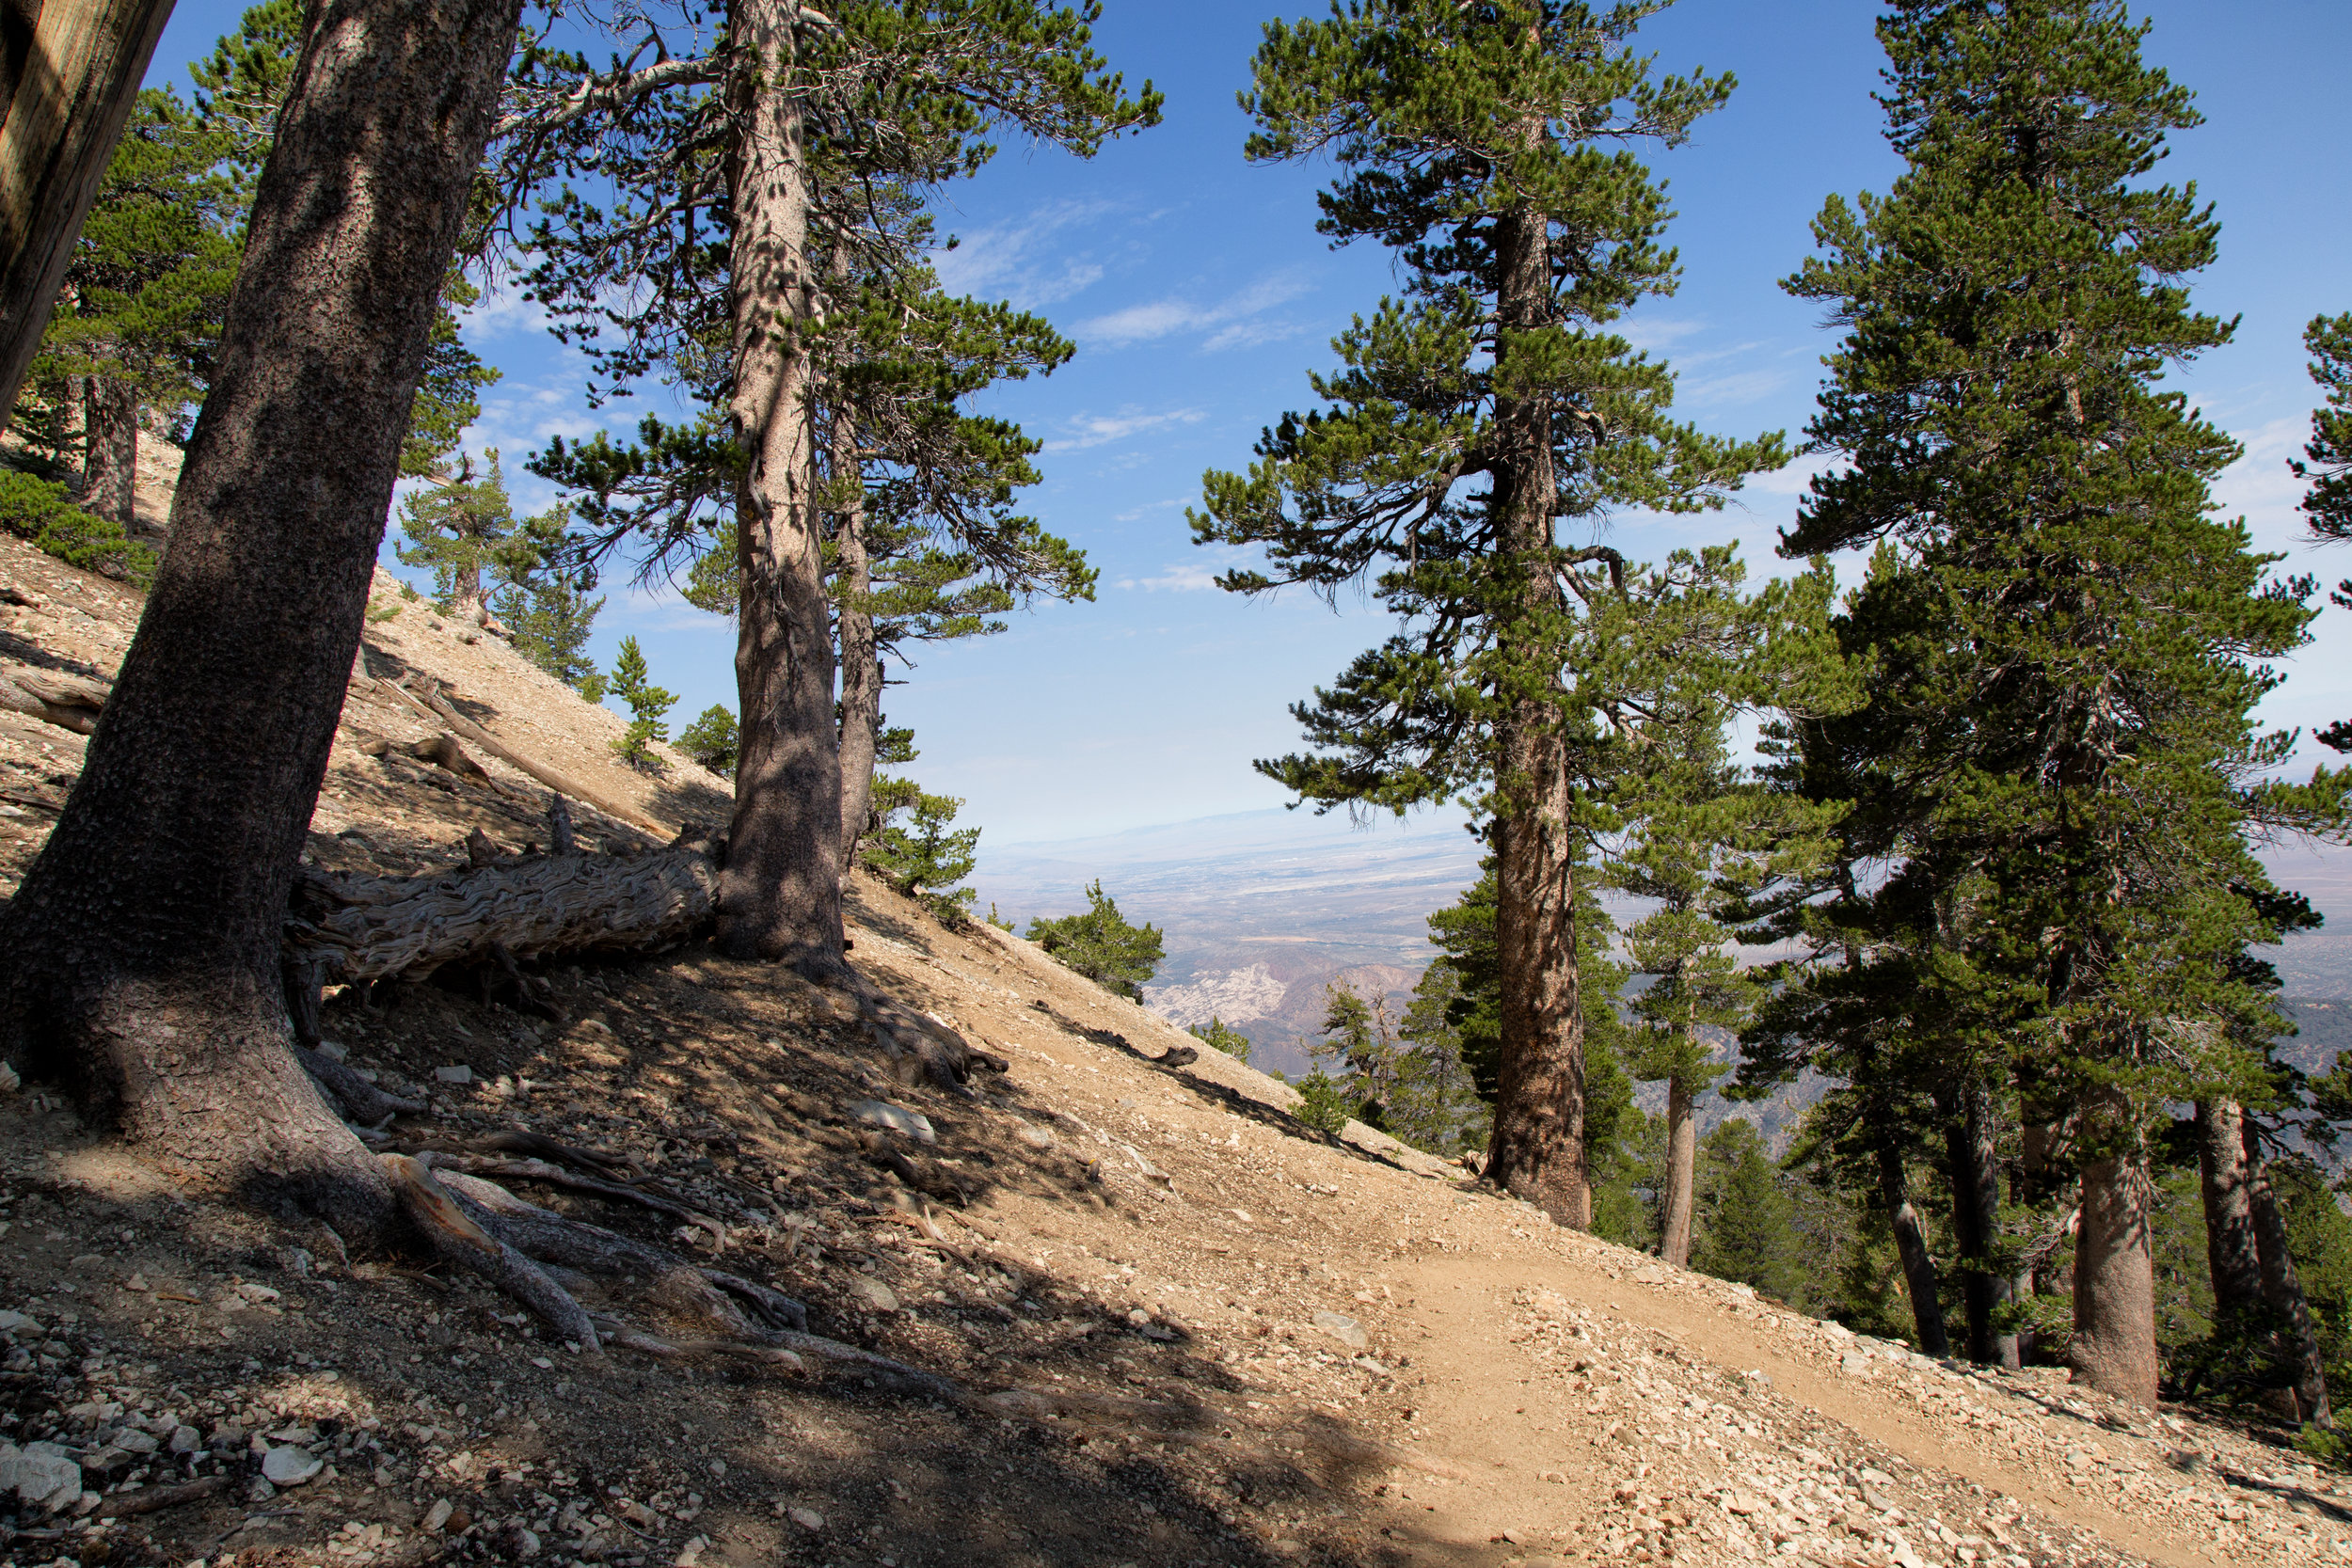 Looking back at one of the many switchbacks.